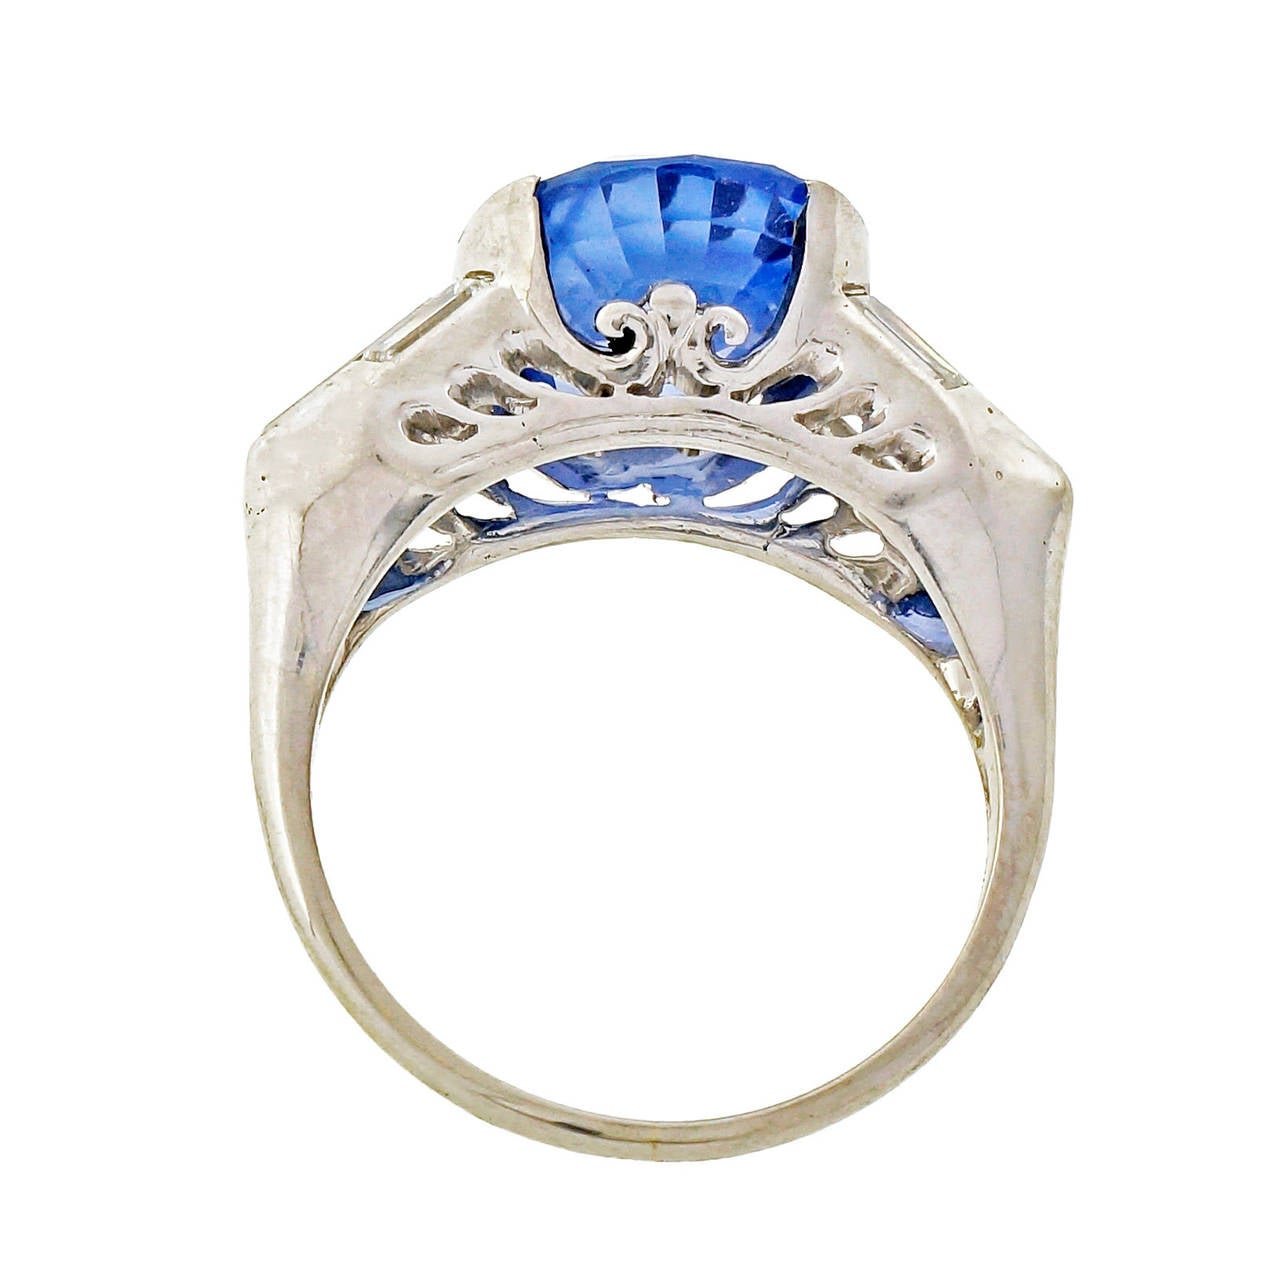 Diamond Rings For Sale Cheap: Blue Sapphire And Diamond Platinum Ring For Sale At 1stdibs